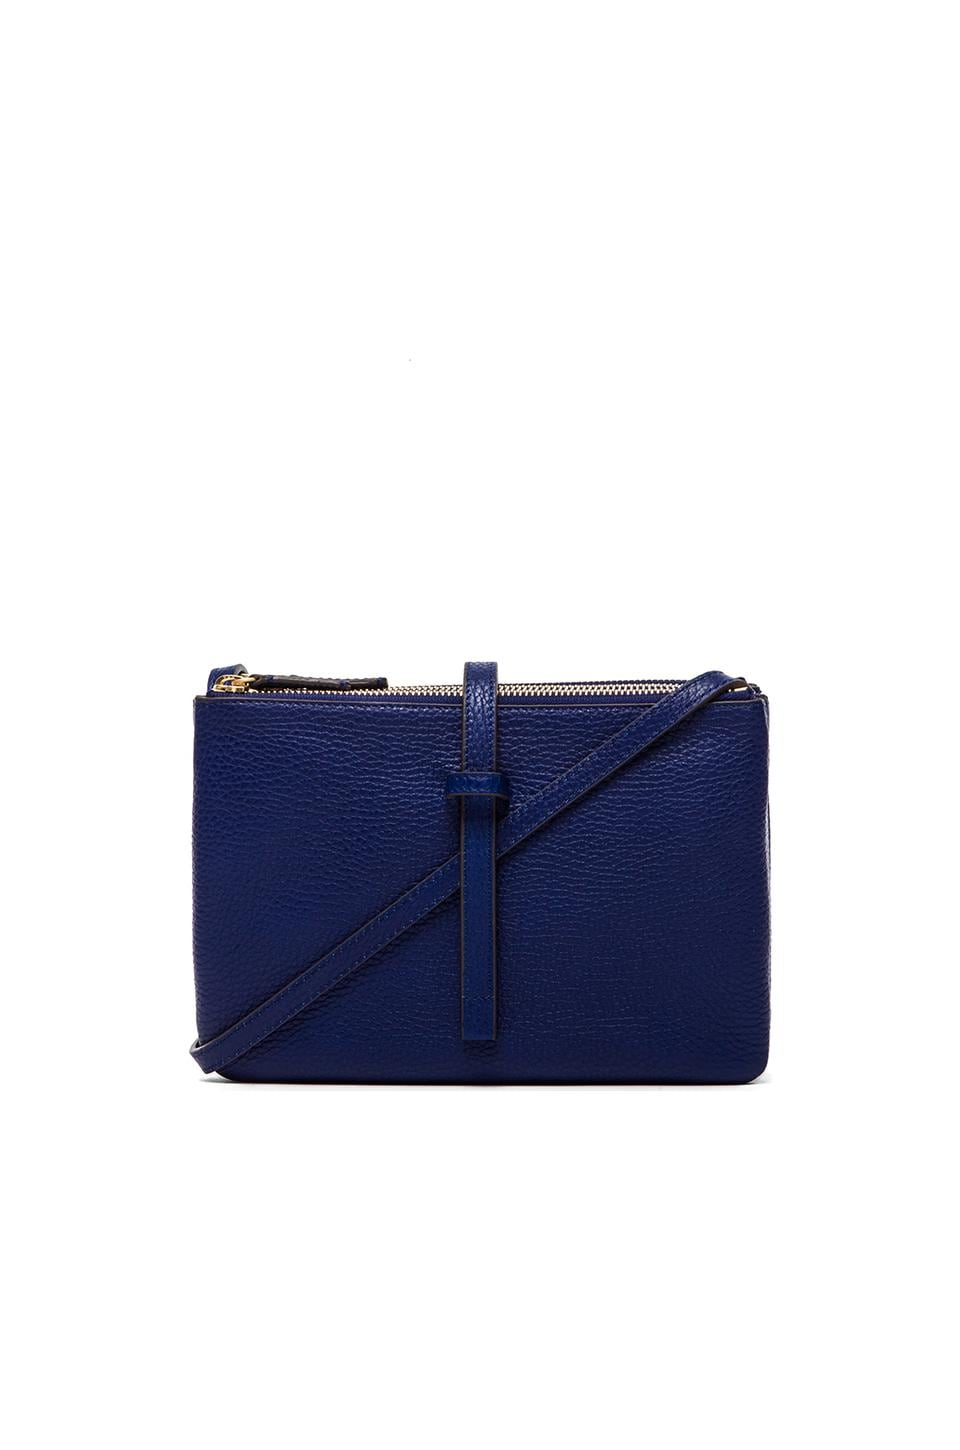 Annabel Ingall Jojo Crossbody in Persian Blue